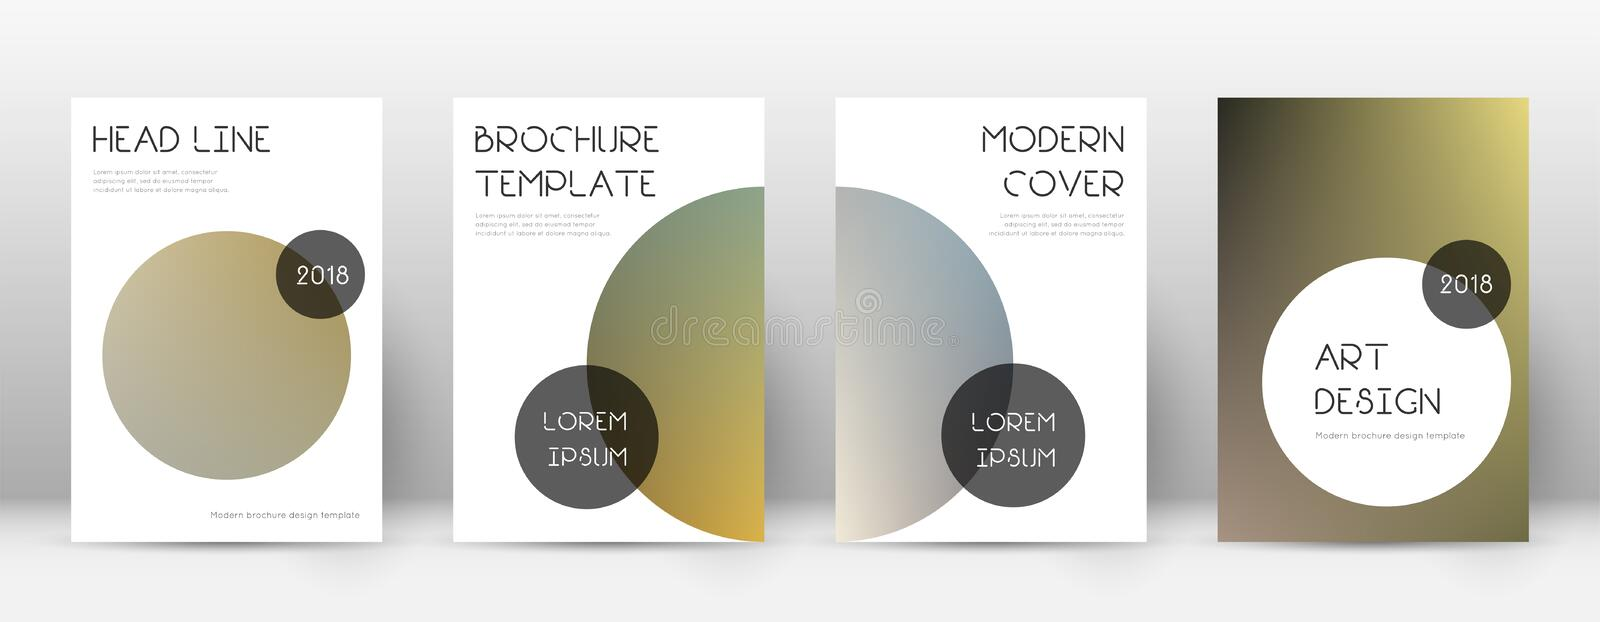 Flyer layout. Trendy overwhelming template for Brochure, Annual Report, Magazine, Poster, Corporate Presentation, Portfolio, Flyer. Beauteous color transition stock illustration